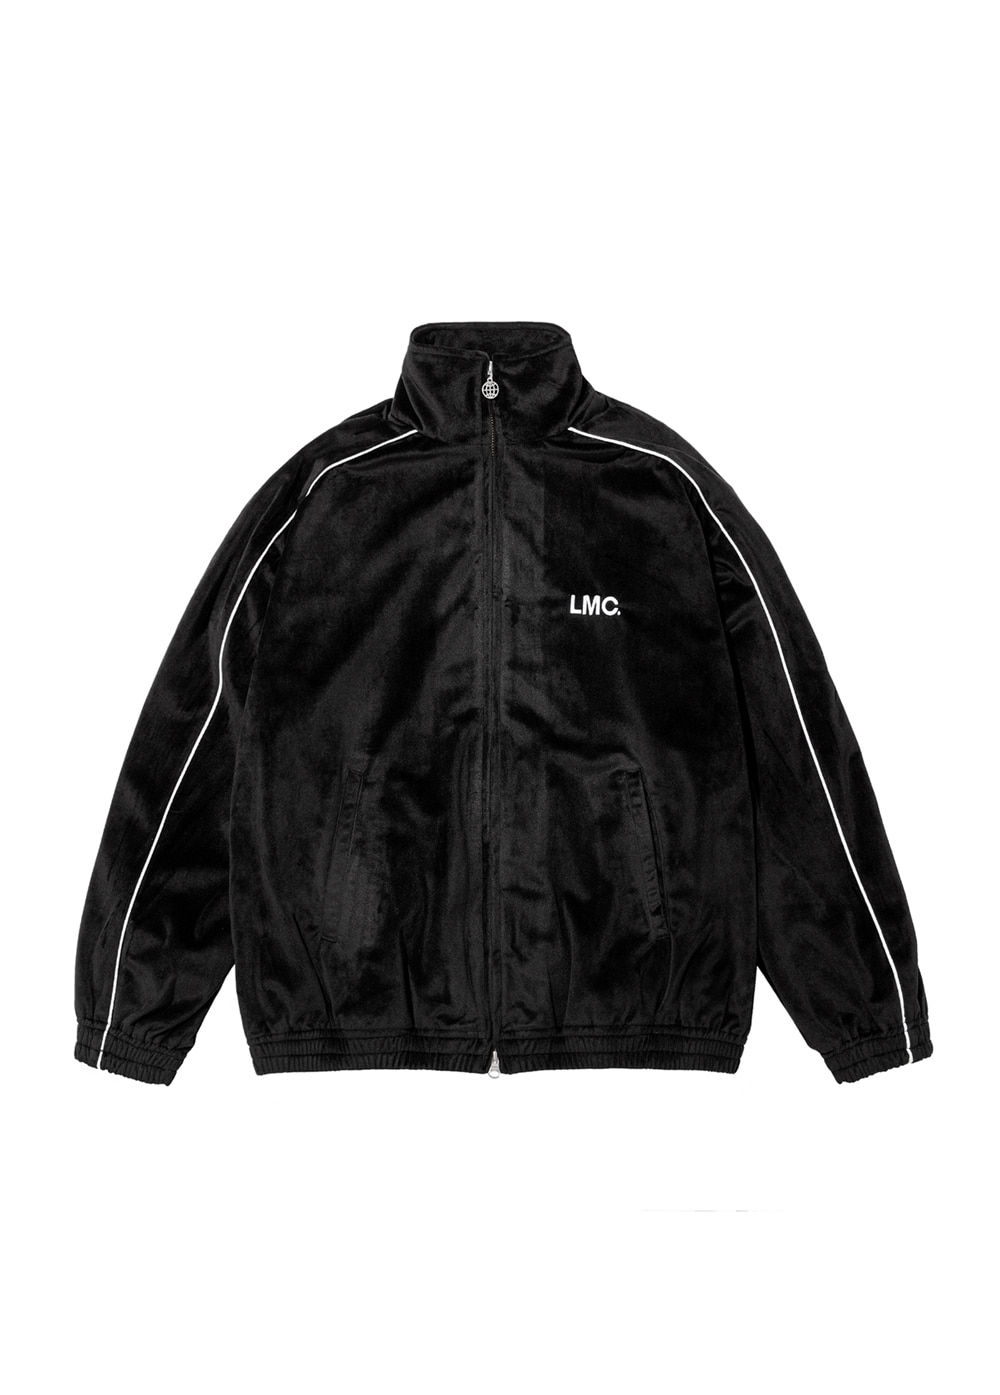 LMC VELOUR TRACK TOP black